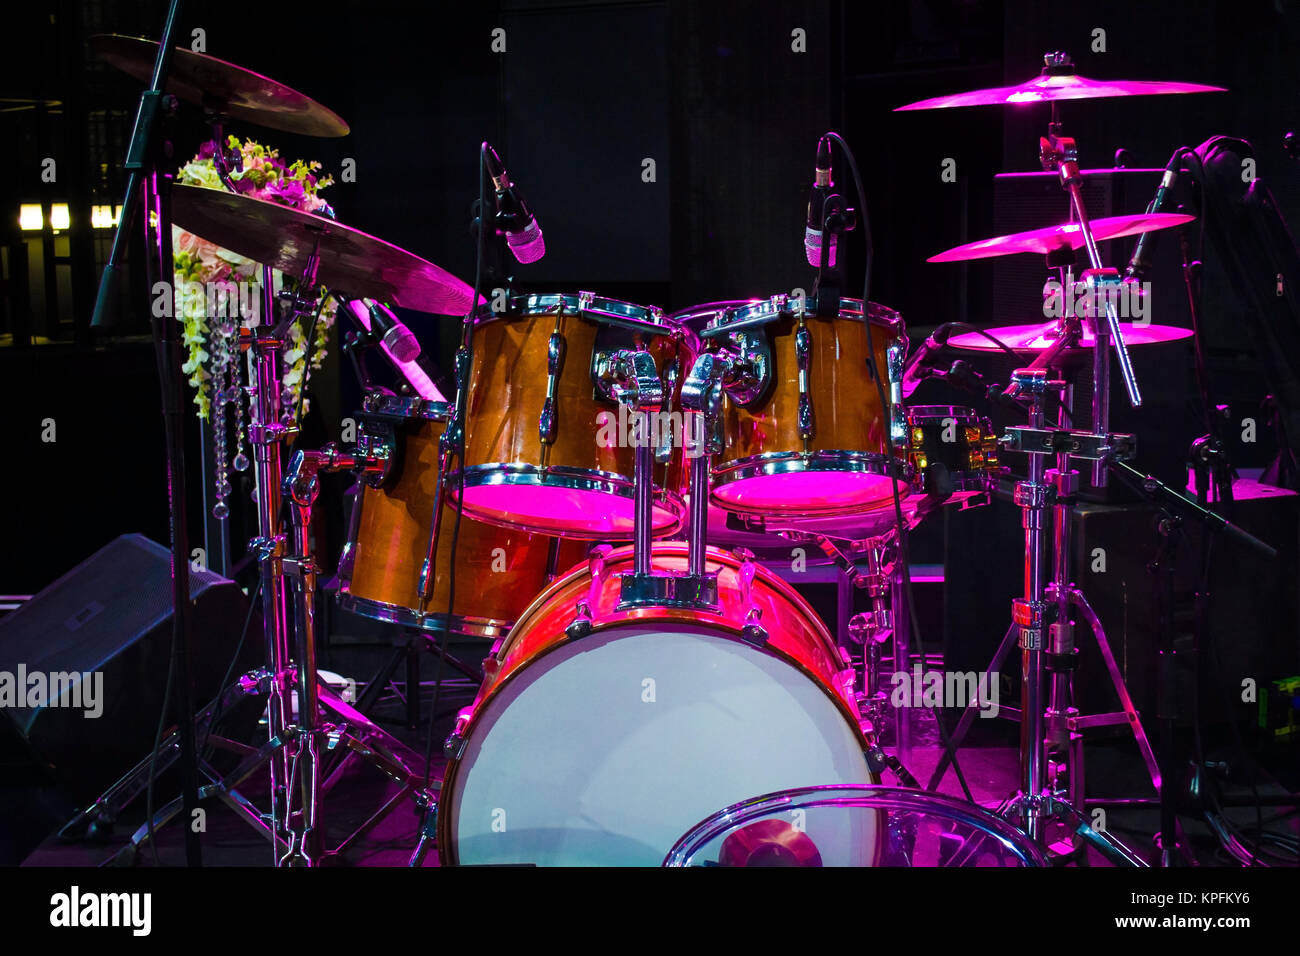 Drum Set On Stage And Magenta Light Background Empty Stage With